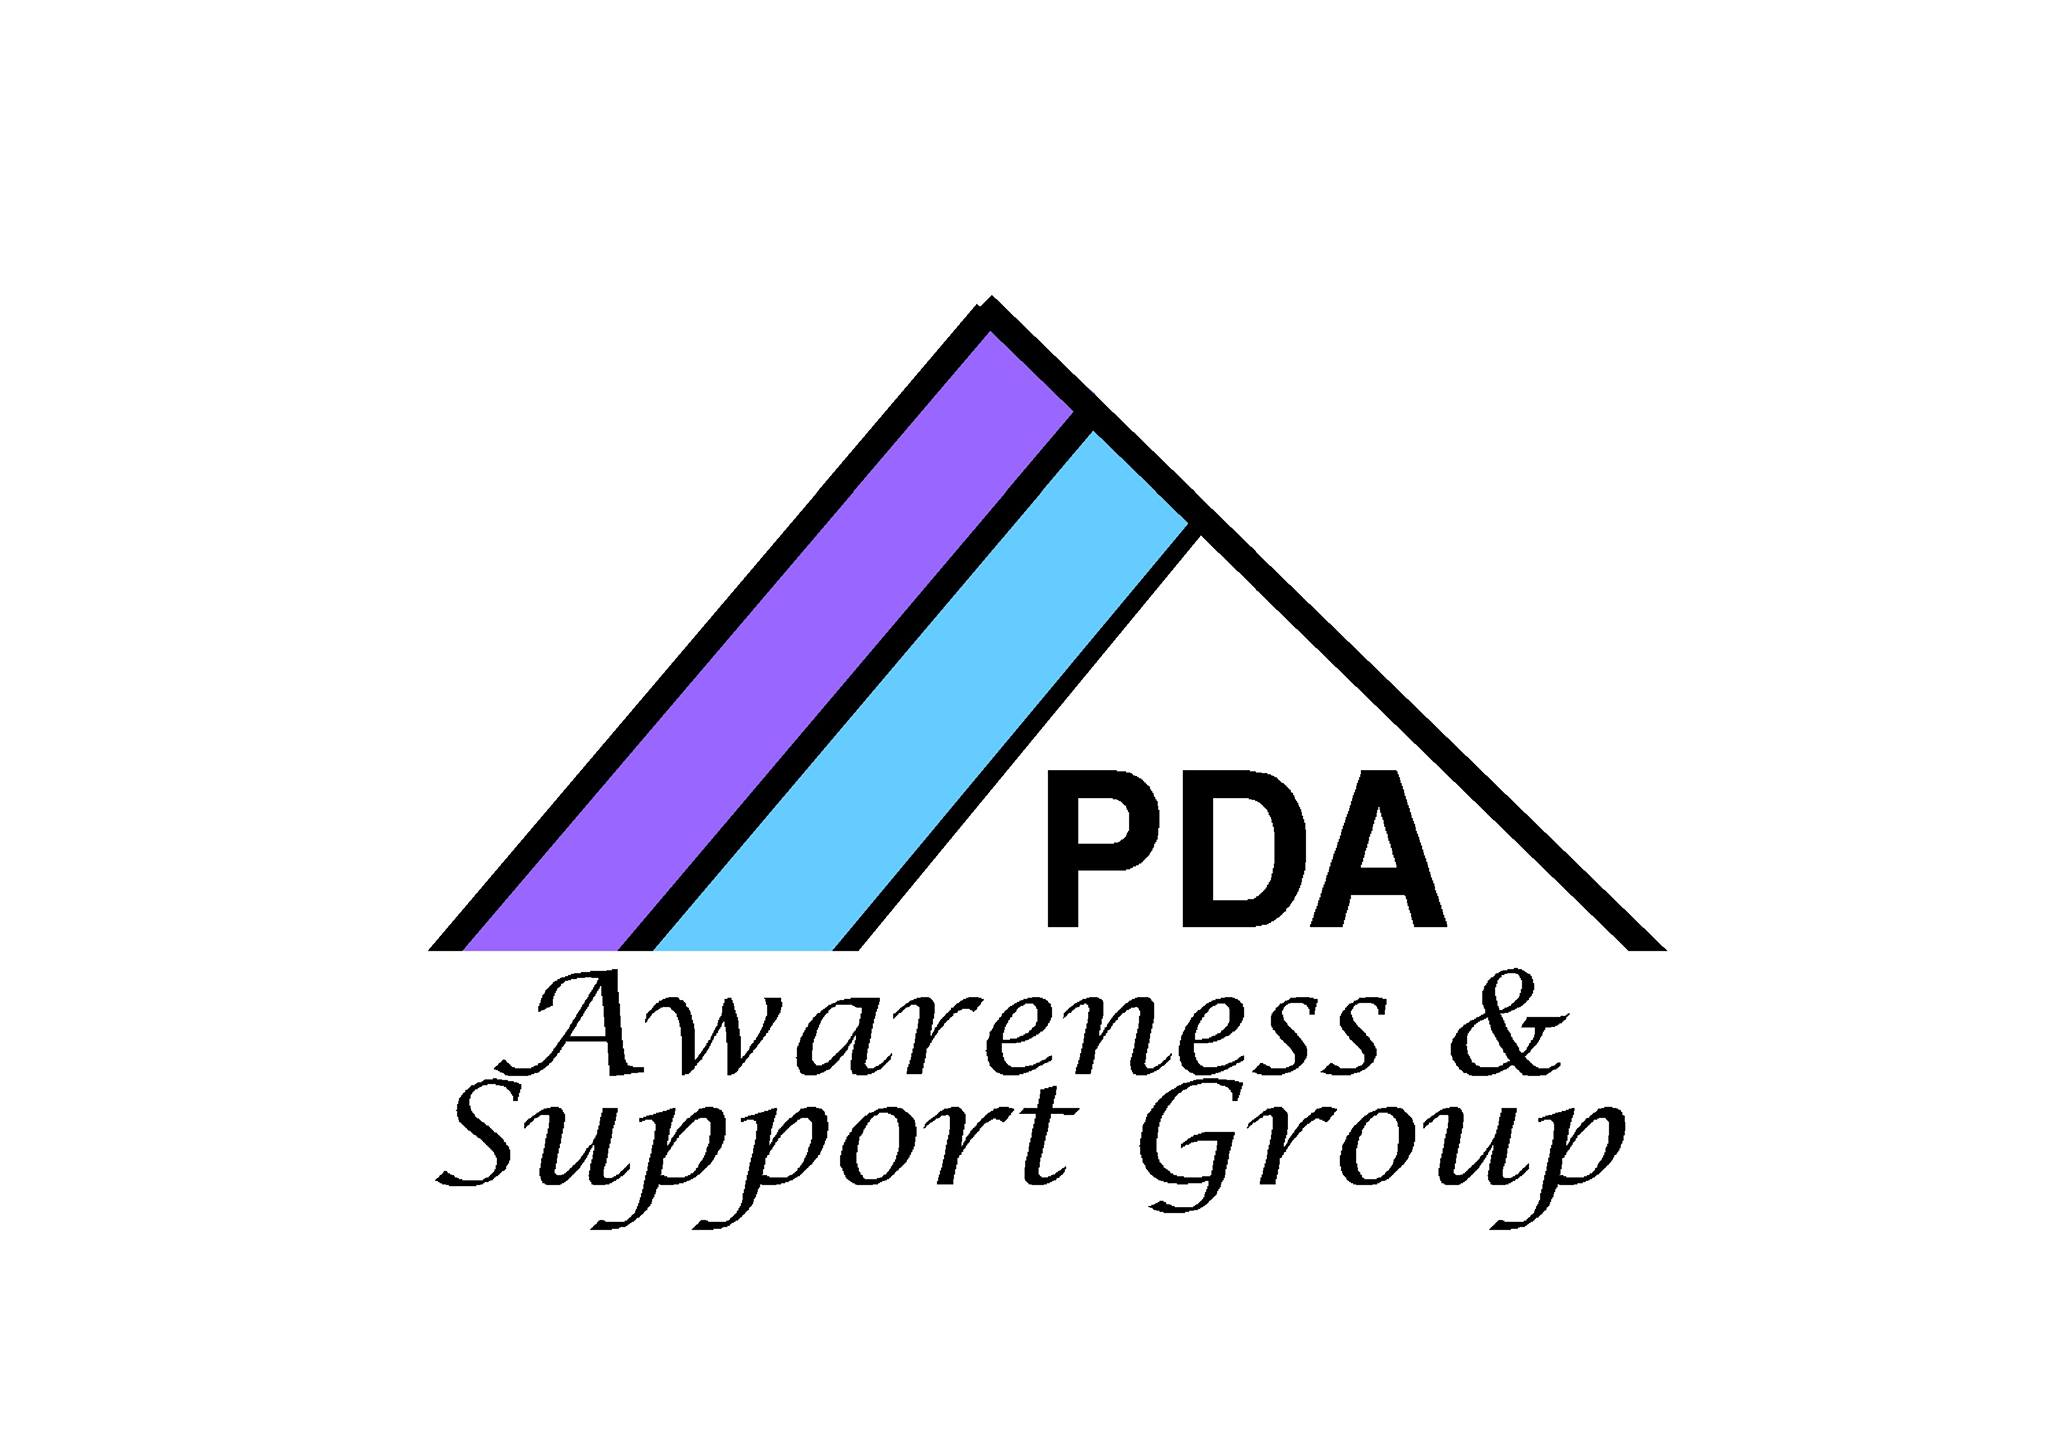 PDA Awareness & Support Group – North Lanarkshire